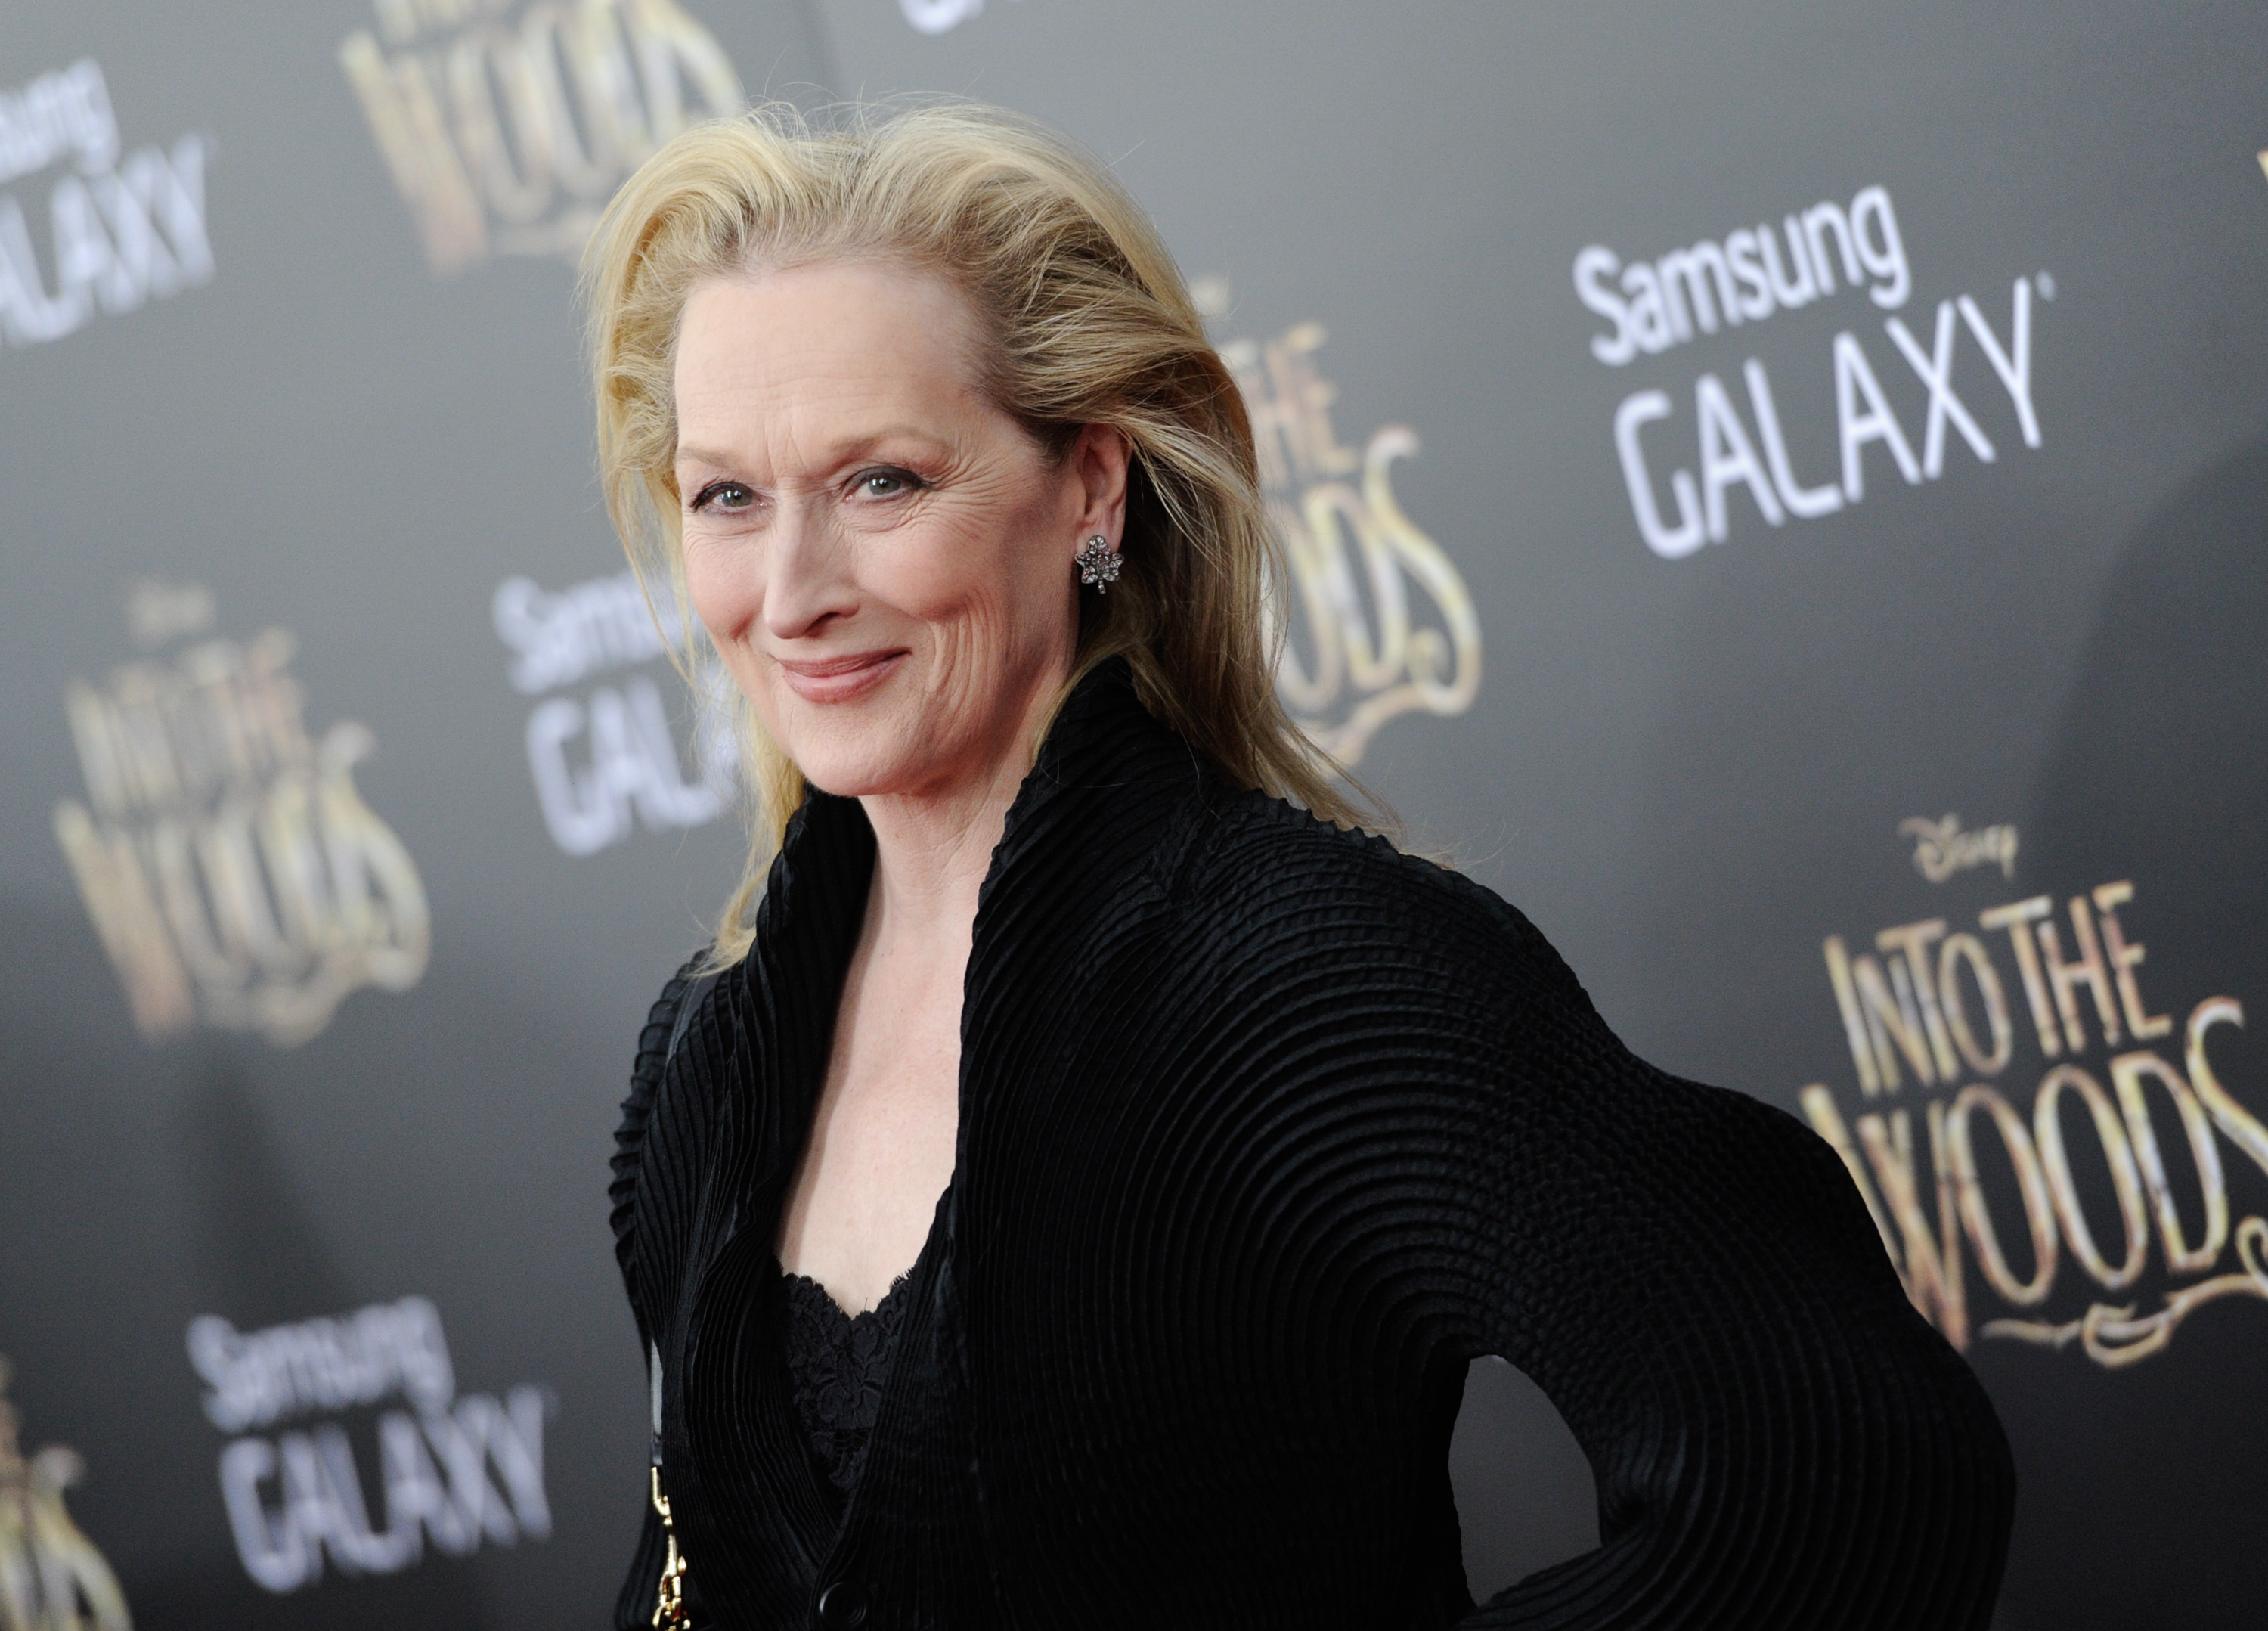 Meryl Streep attends the premiere of  Into The Woods  at the Ziegfeld Theatre on Dec. 8, 2014, in New York.